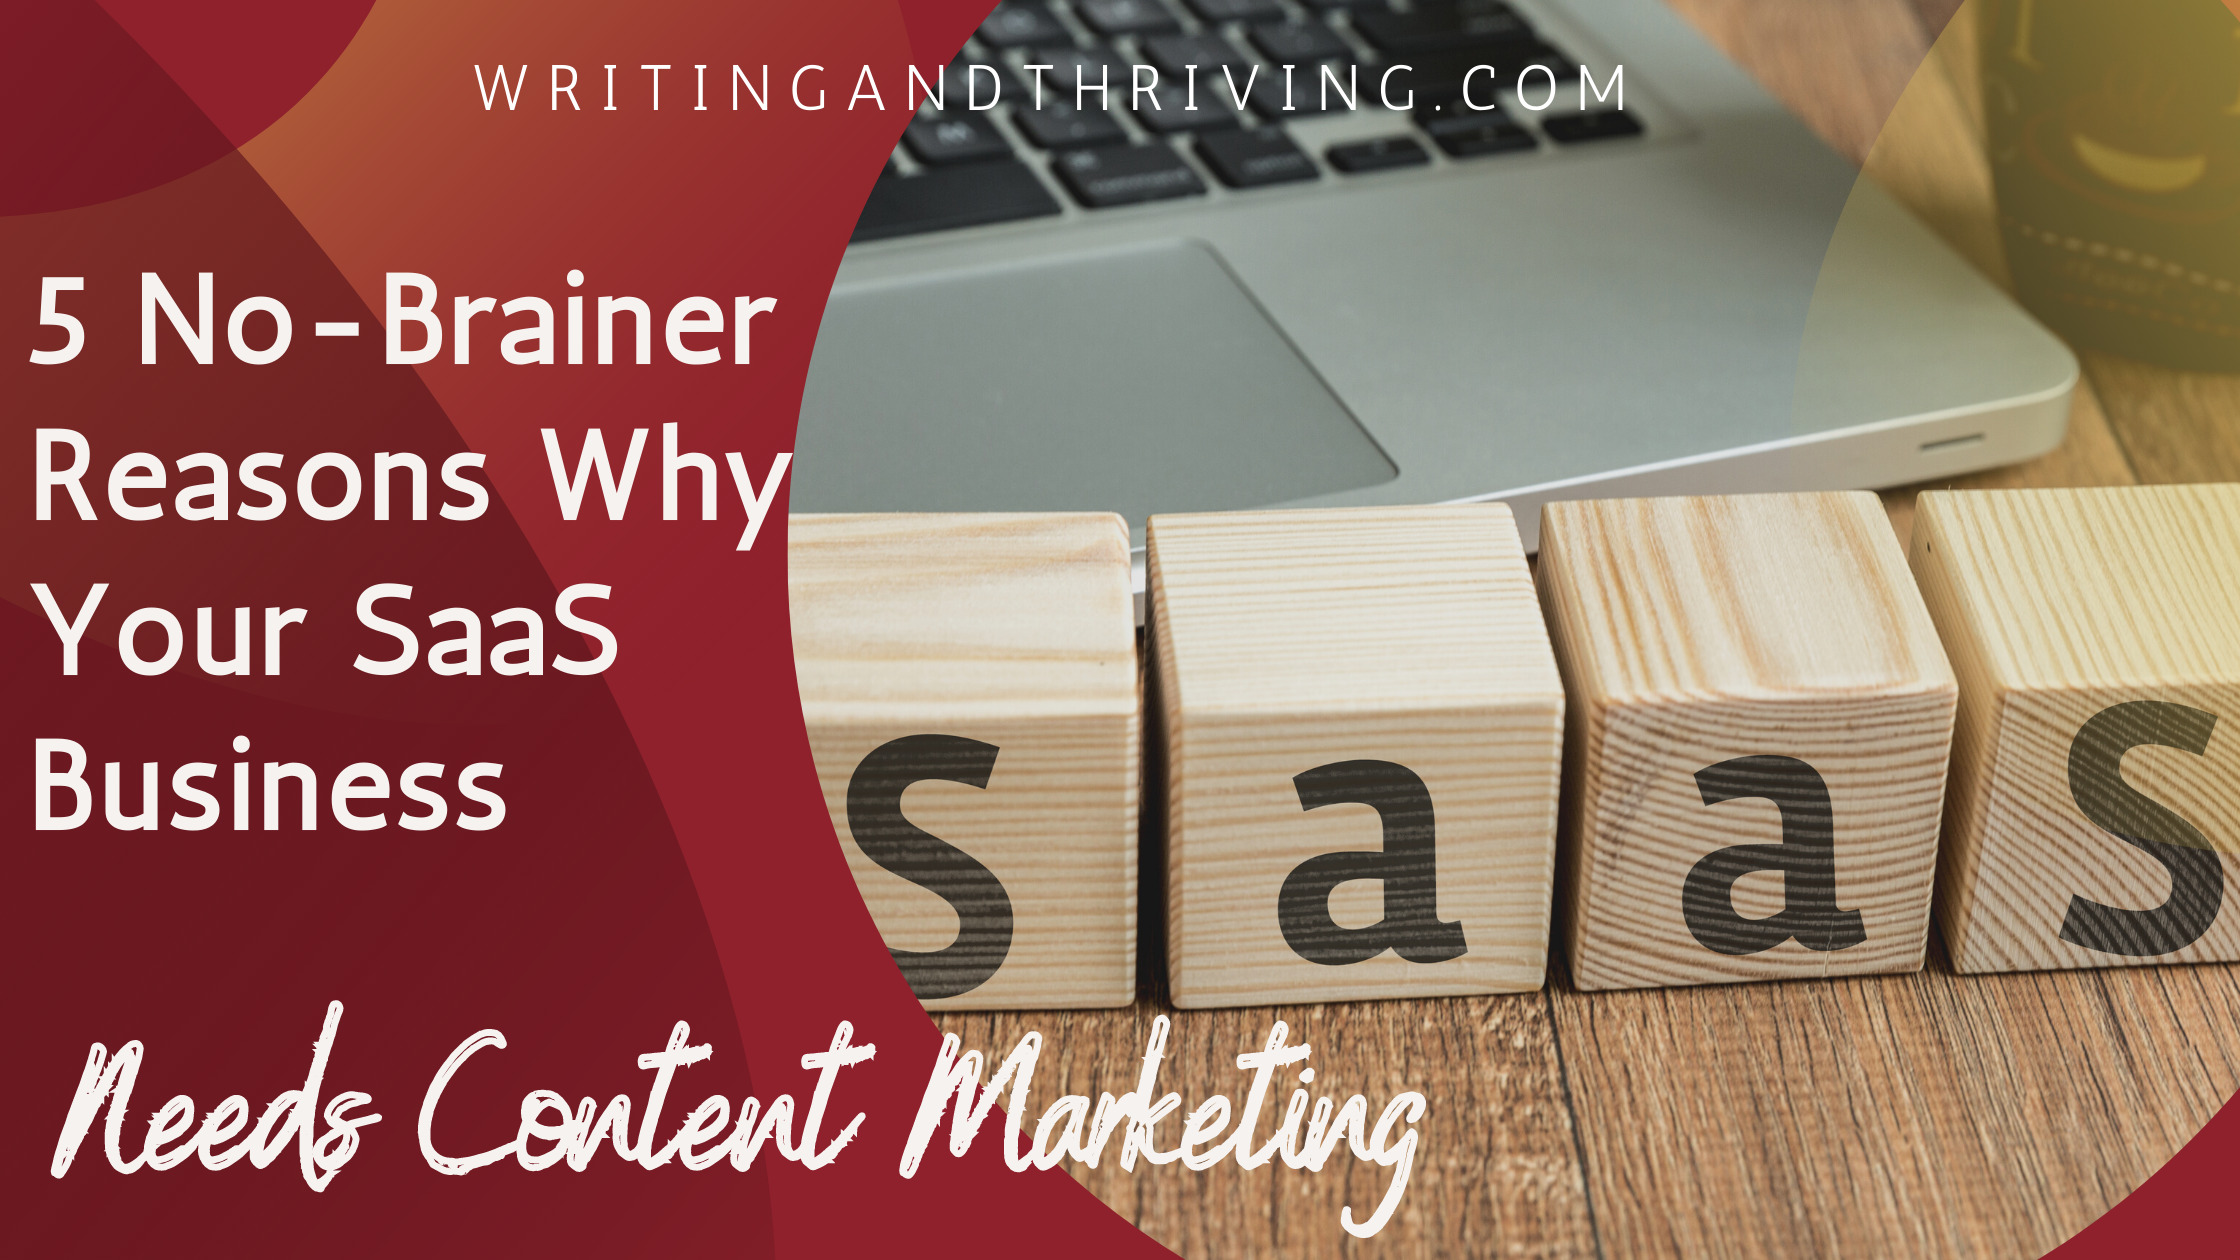 why your saas business needs content marketing